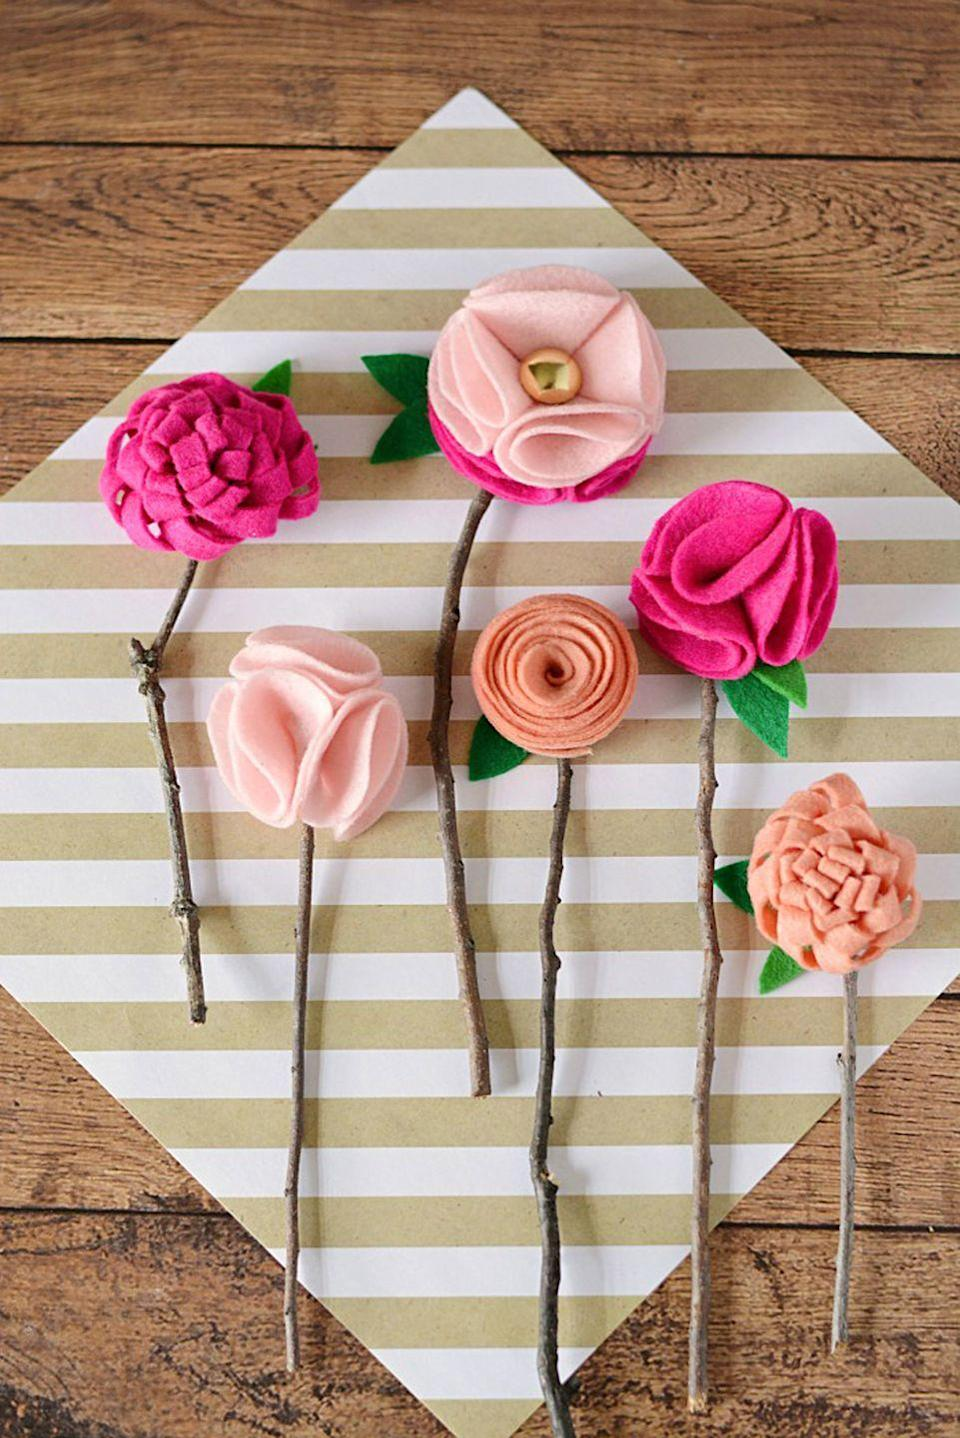 "<p>Did you forget arrange for <a href=""https://www.countryliving.com/life/g4217/best-mothers-day-flowers/"" rel=""nofollow noopener"" target=""_blank"" data-ylk=""slk:Mother's Day flowers delivery"" class=""link rapid-noclick-resp"">Mother's Day flowers delivery</a> this year? Don't worry—these felt flowers are just as pretty and will last forever.</p><p><strong>Get the tutorial at <a href=""https://www.mommymoment.ca/2016/04/diy-no-sew-felt-flowers.html"" rel=""nofollow noopener"" target=""_blank"" data-ylk=""slk:Mommy Moment"" class=""link rapid-noclick-resp"">Mommy Moment</a>.</strong></p><p><strong><a class=""link rapid-noclick-resp"" href=""https://go.redirectingat.com?id=74968X1596630&url=https%3A%2F%2Fwww.michaels.com%2Ffelt-sheets-by-creatology%2F10602150.html&sref=https%3A%2F%2Fwww.countryliving.com%2Fdiy-crafts%2Fg4233%2Fmothers-day-crafts-kids%2F"" rel=""nofollow noopener"" target=""_blank"" data-ylk=""slk:SHOP FELT SHEETS"">SHOP FELT SHEETS</a> </strong></p>"